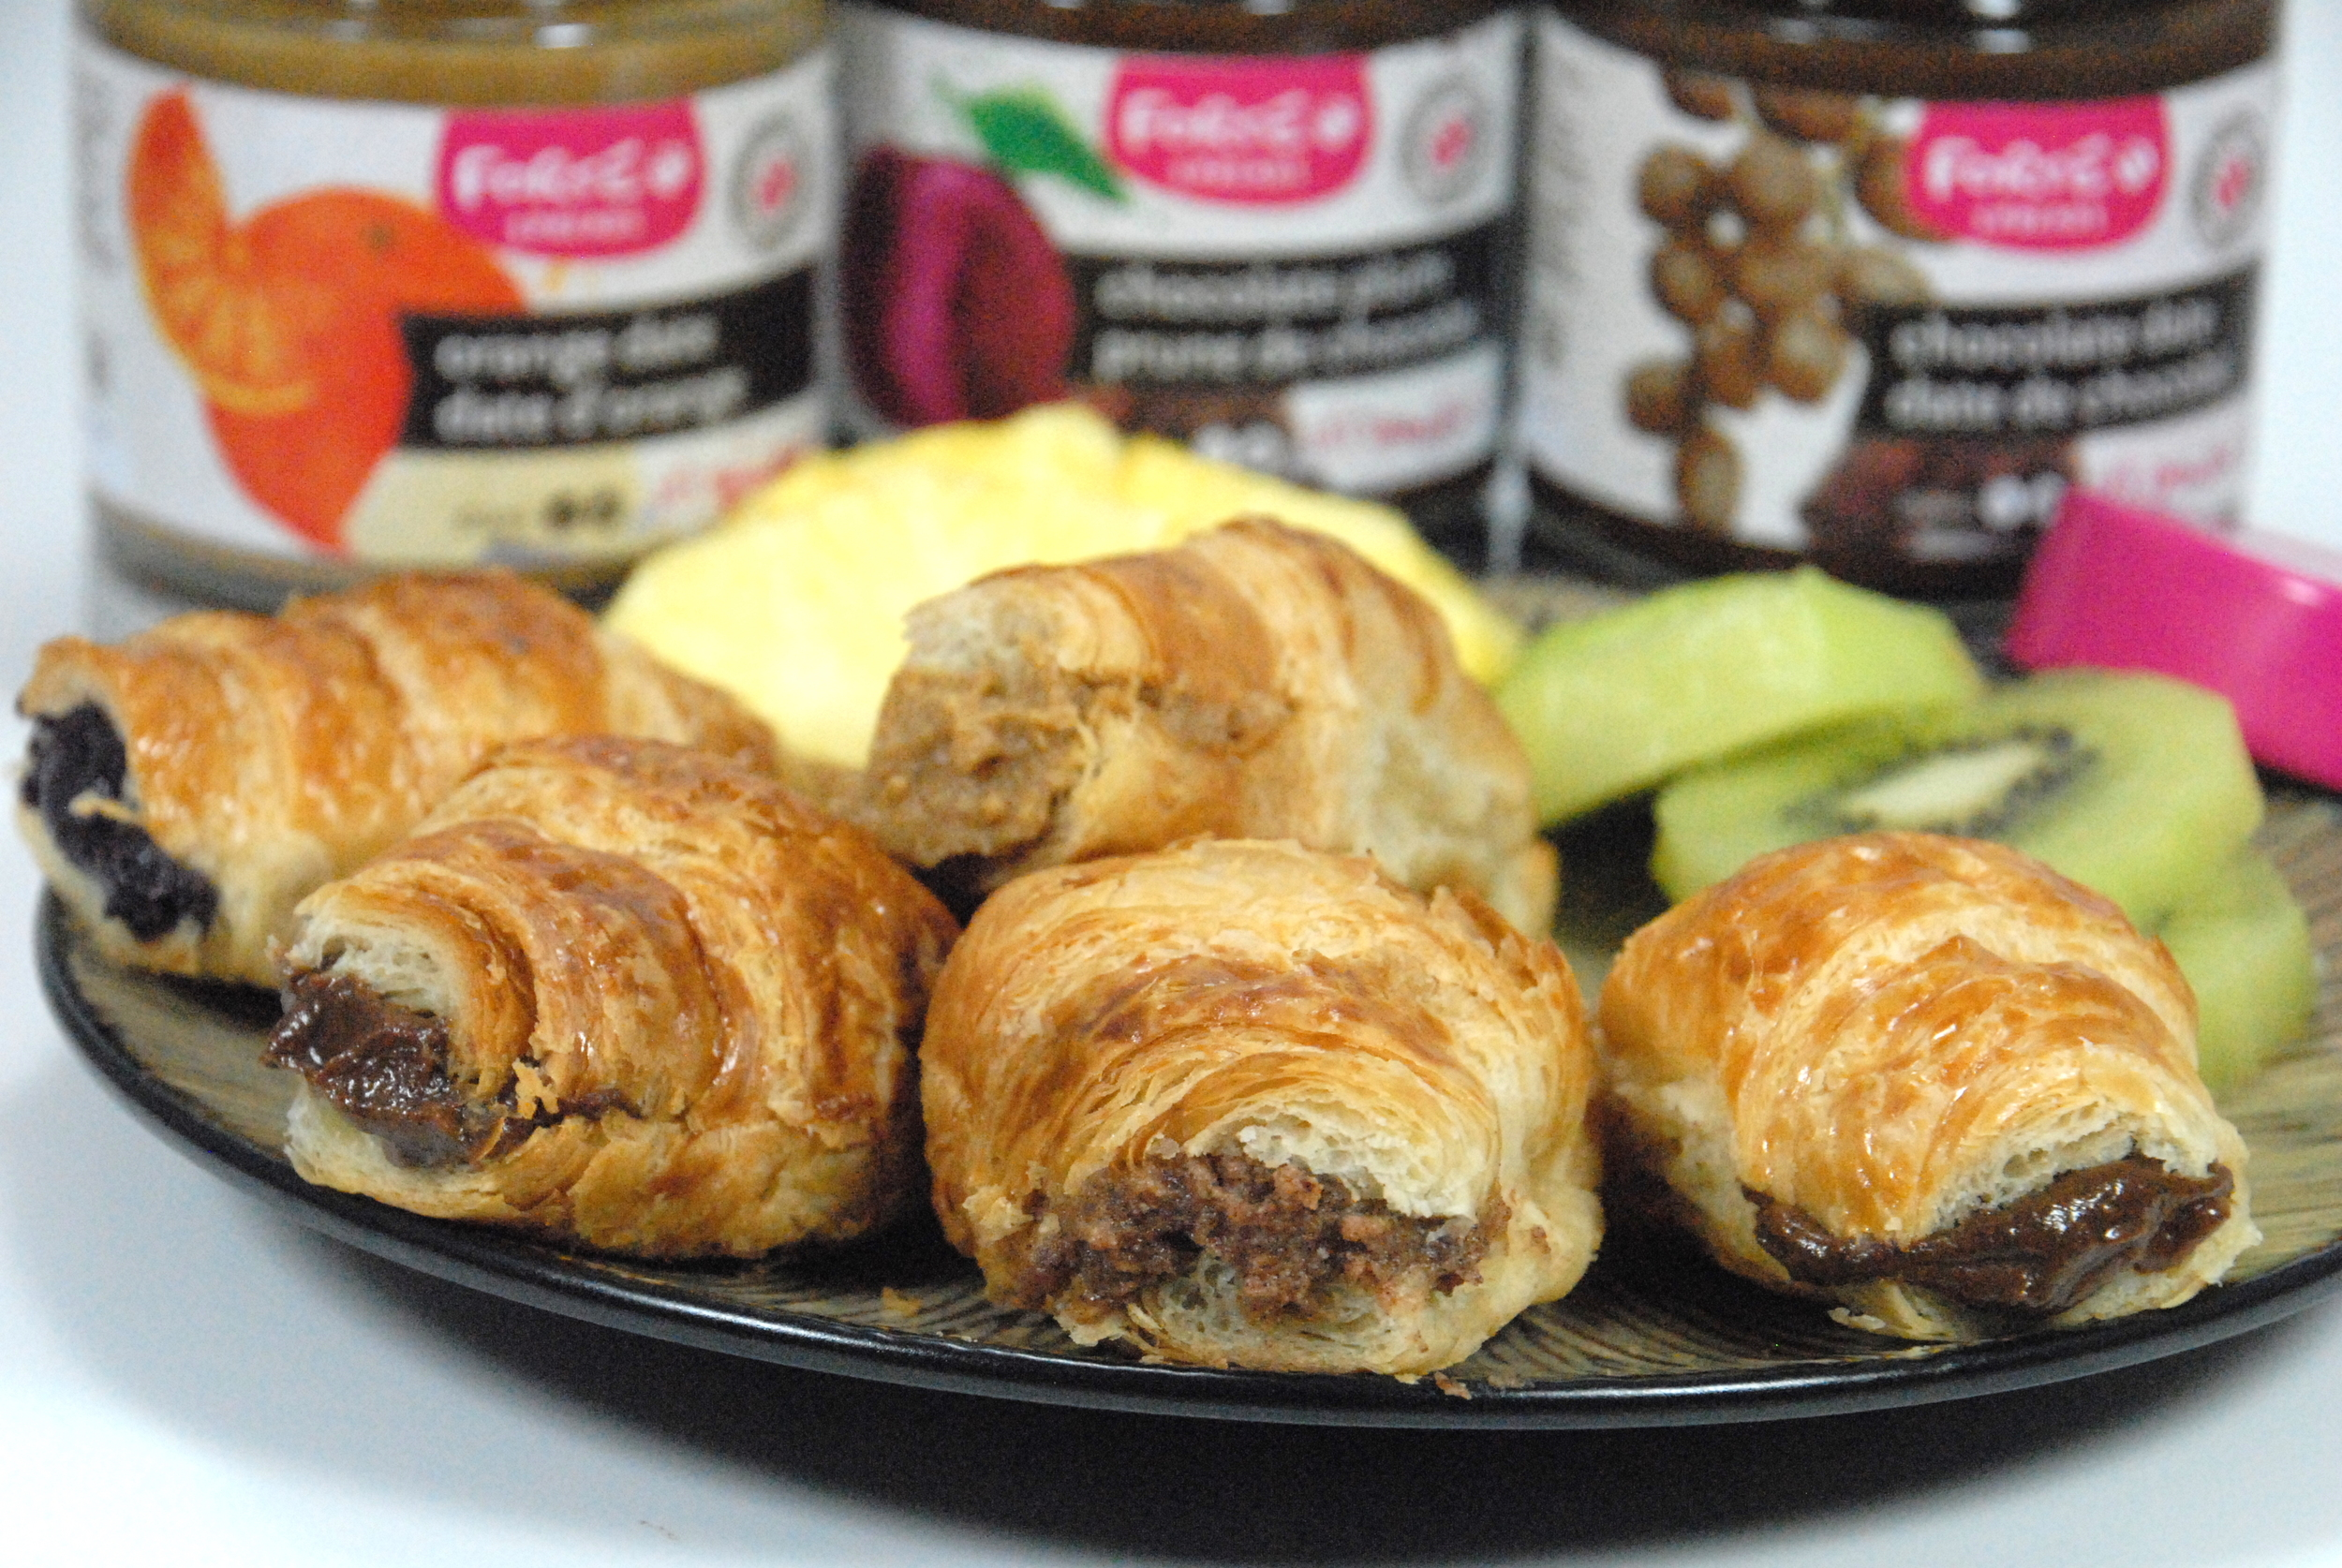 Mini croissants filled with Forte chocolate fruit spreads